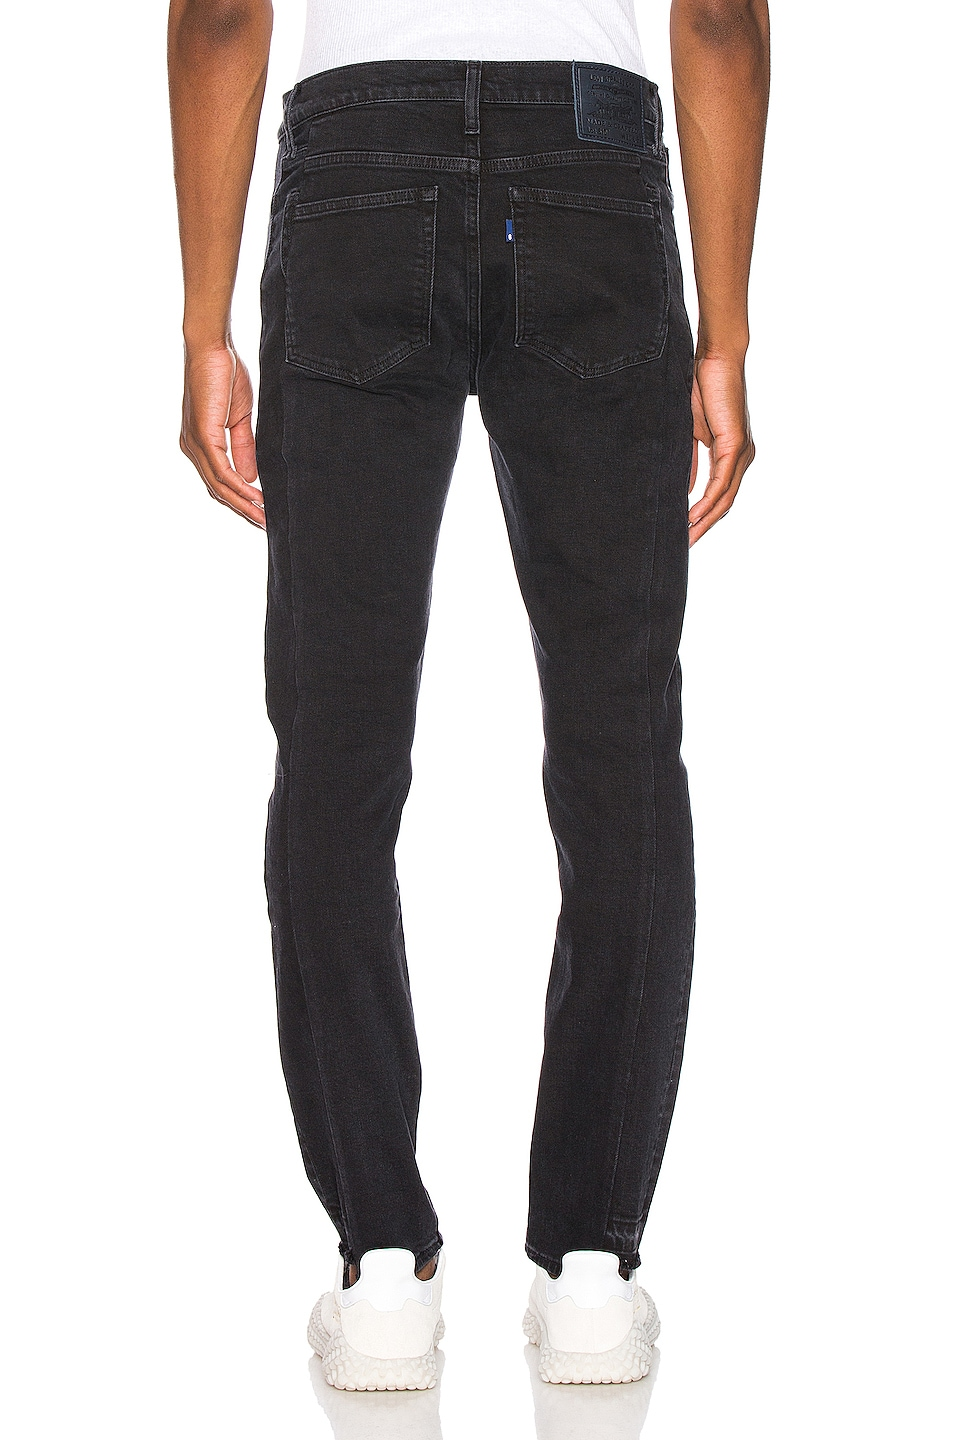 Image 3 of LEVI'S: Made & Crafted 510 Skinny Jean in Pieced Double Black